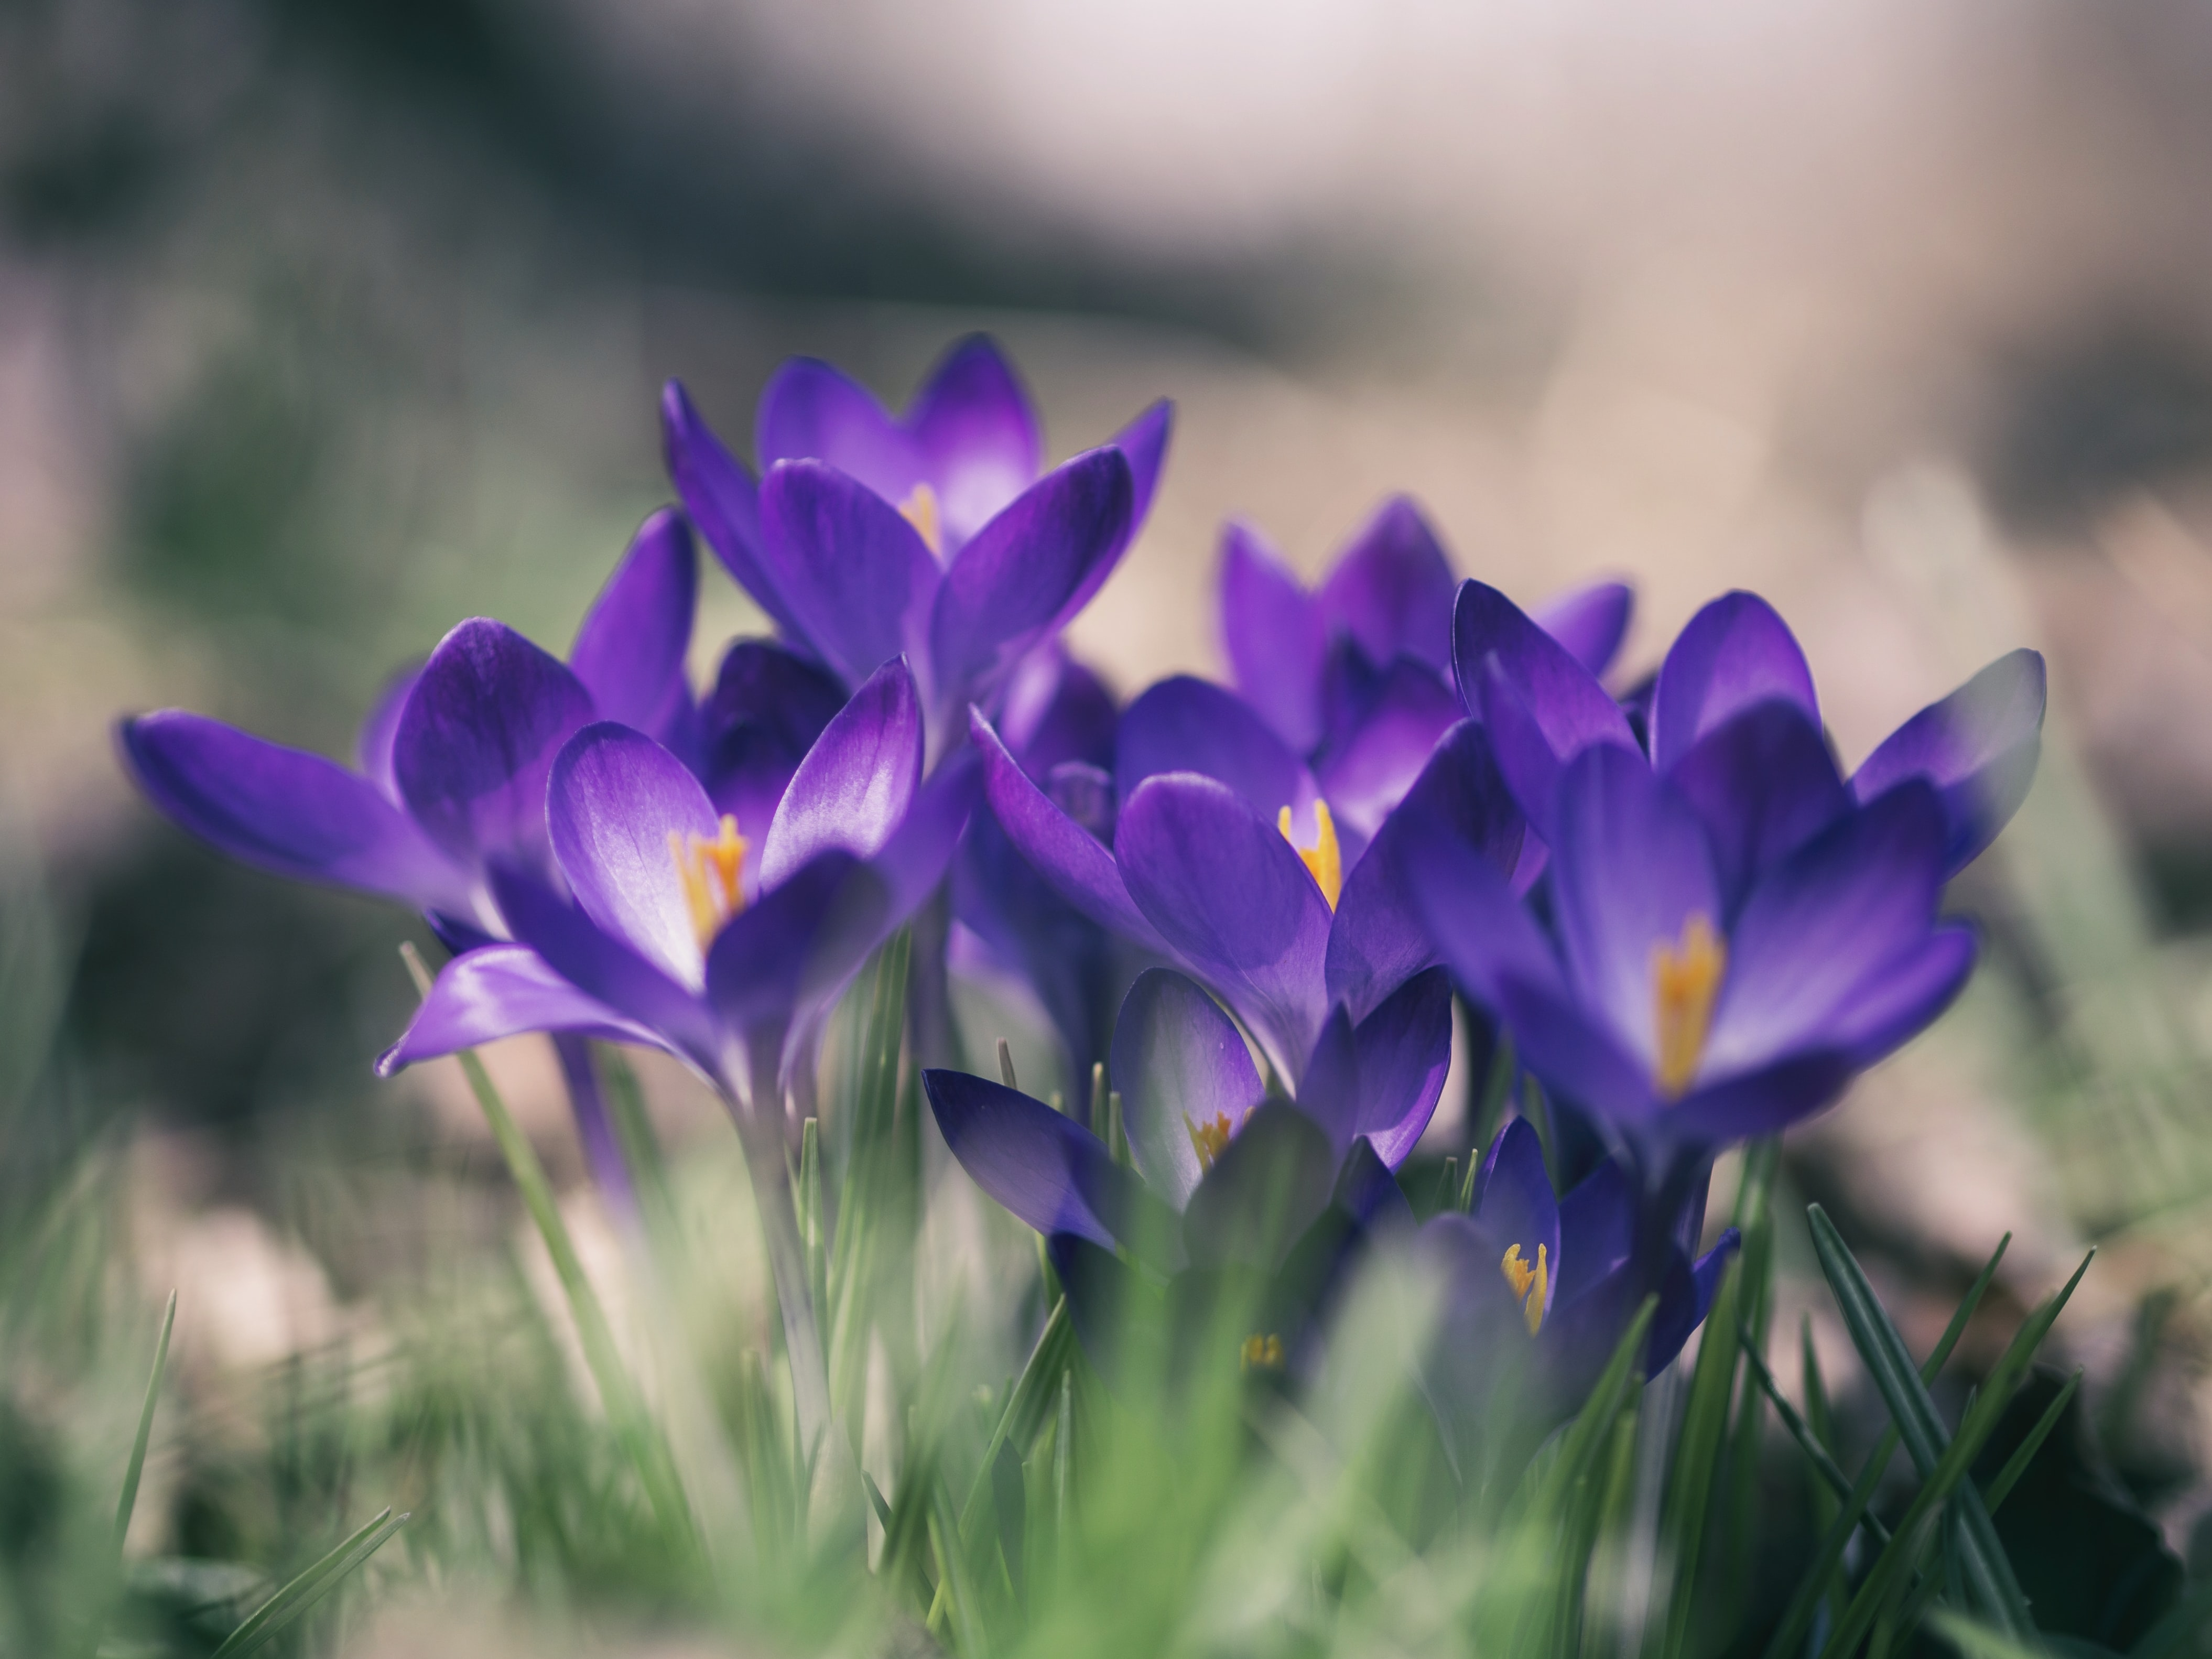 Close up for group of crocus flowers in Spring